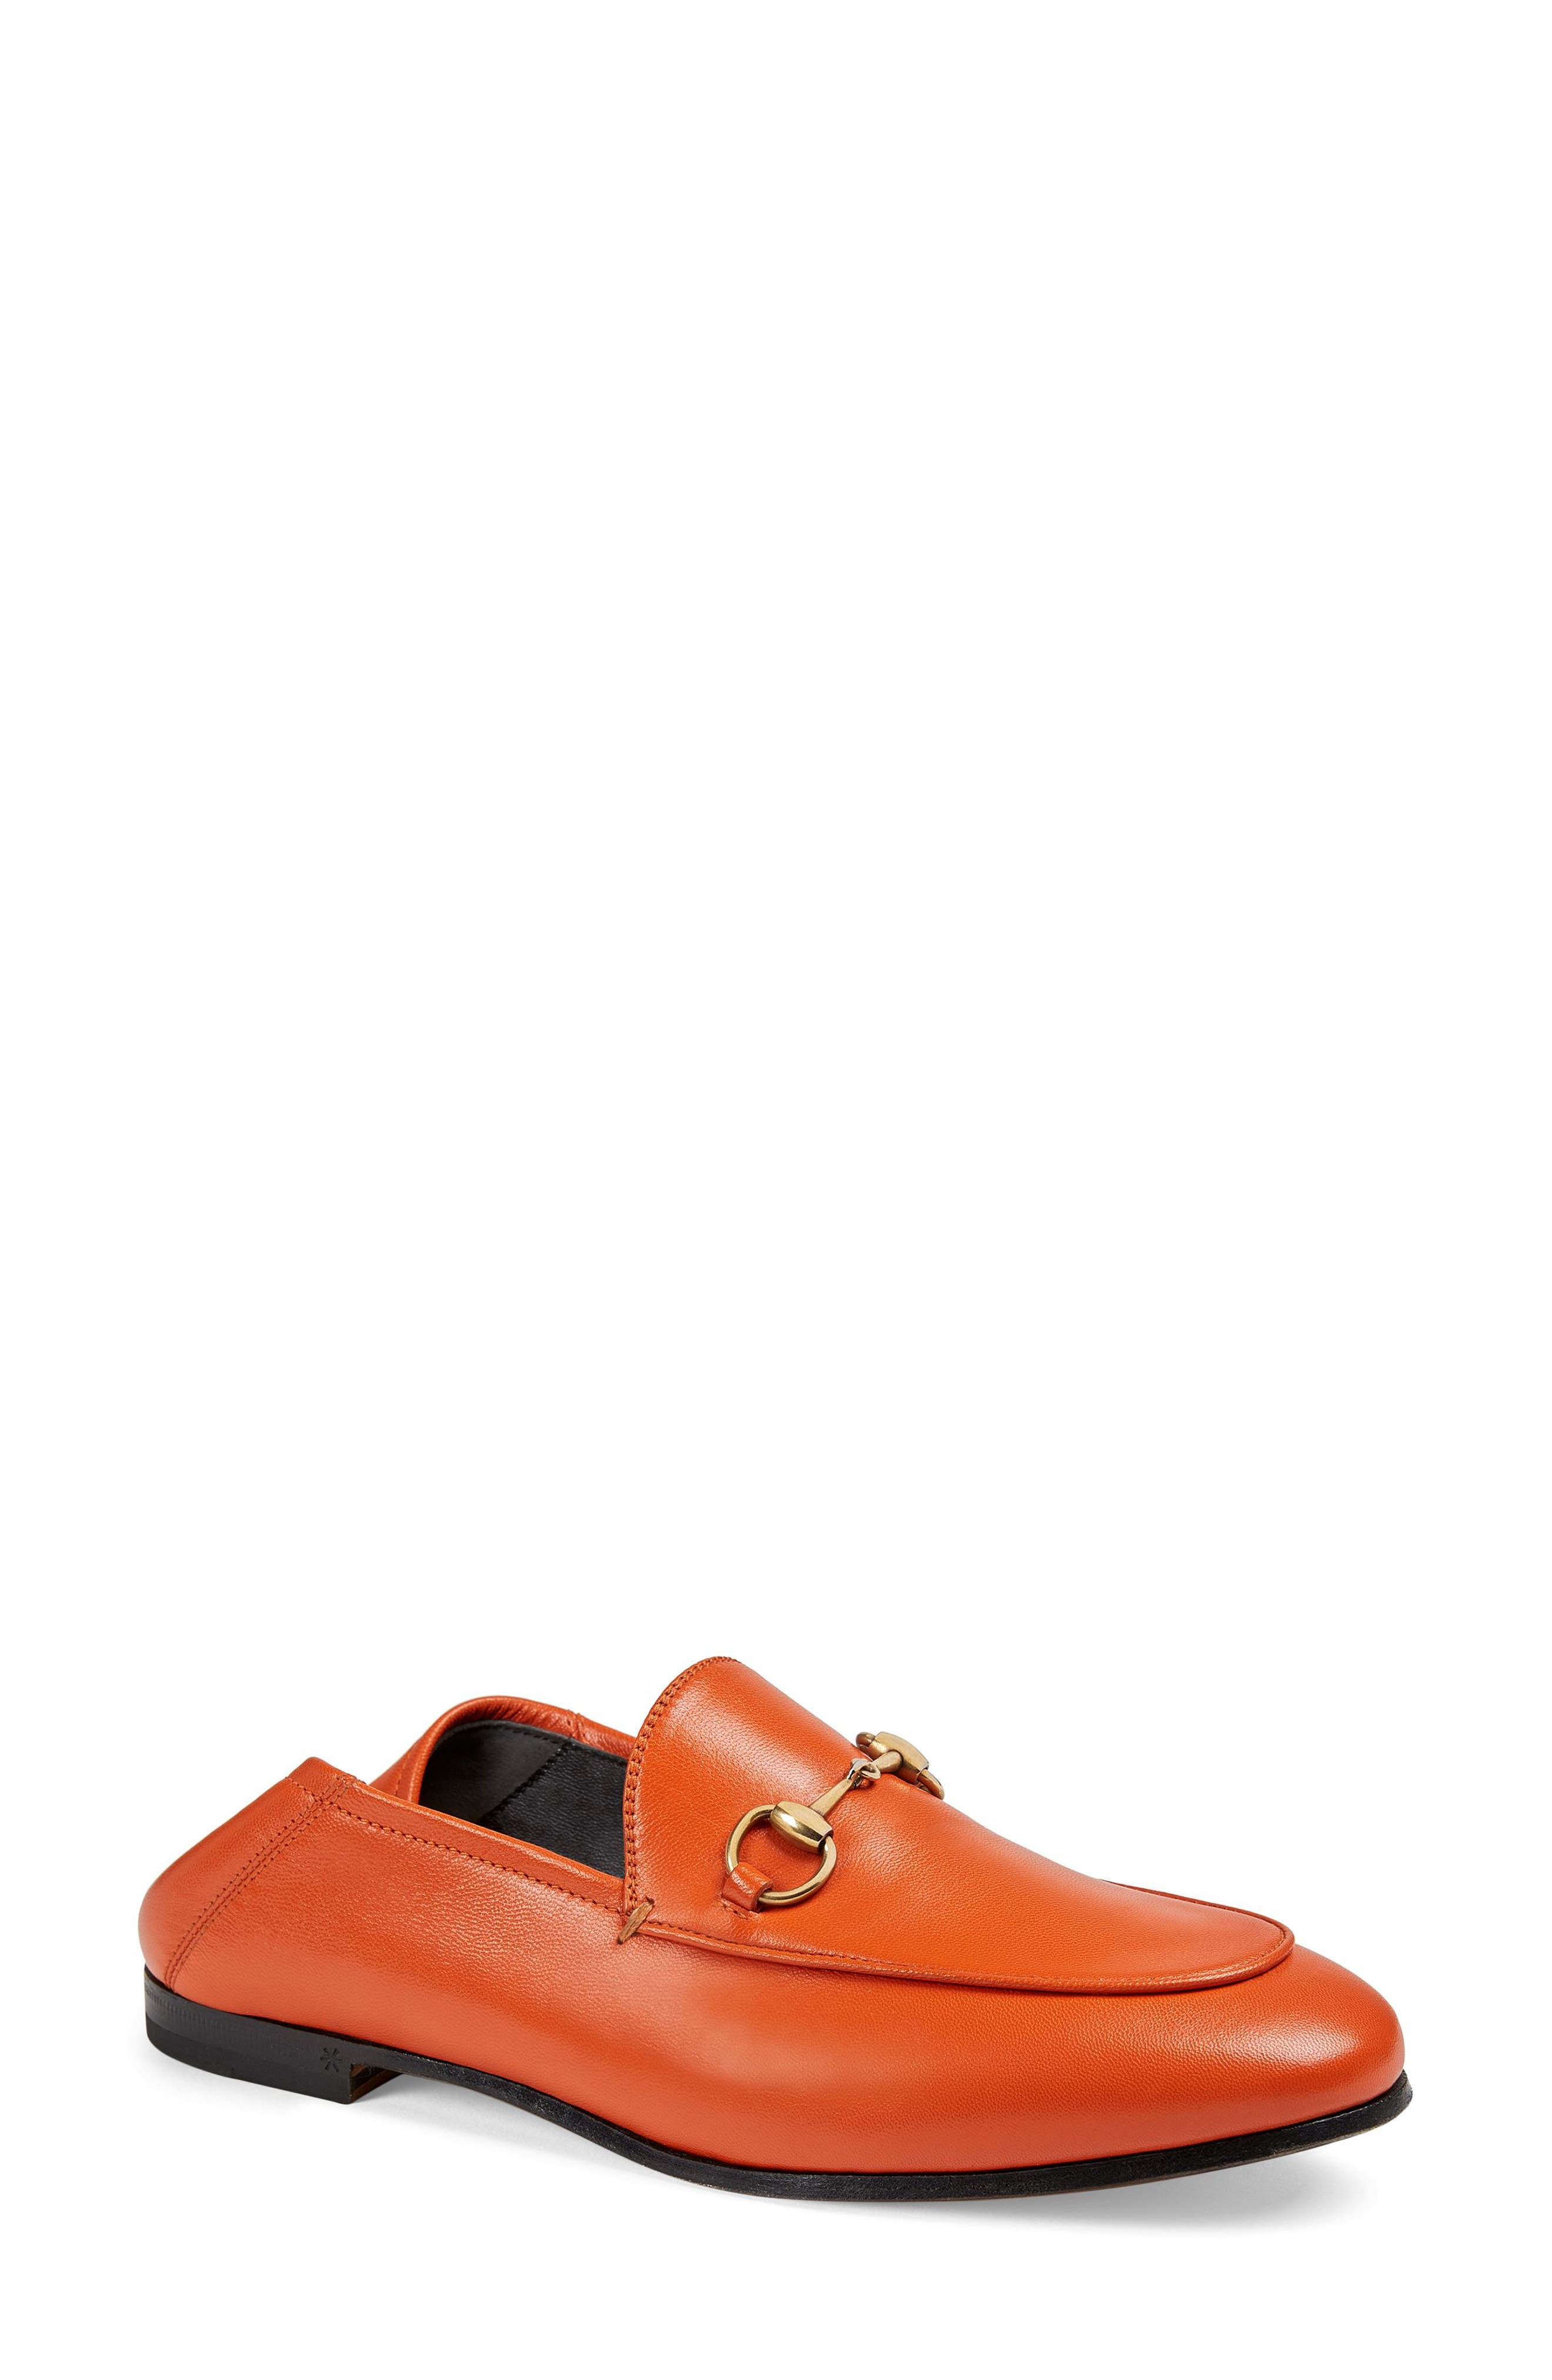 Brixton Convertible Loafer,                         Main,                         color, DEEP ORANGE